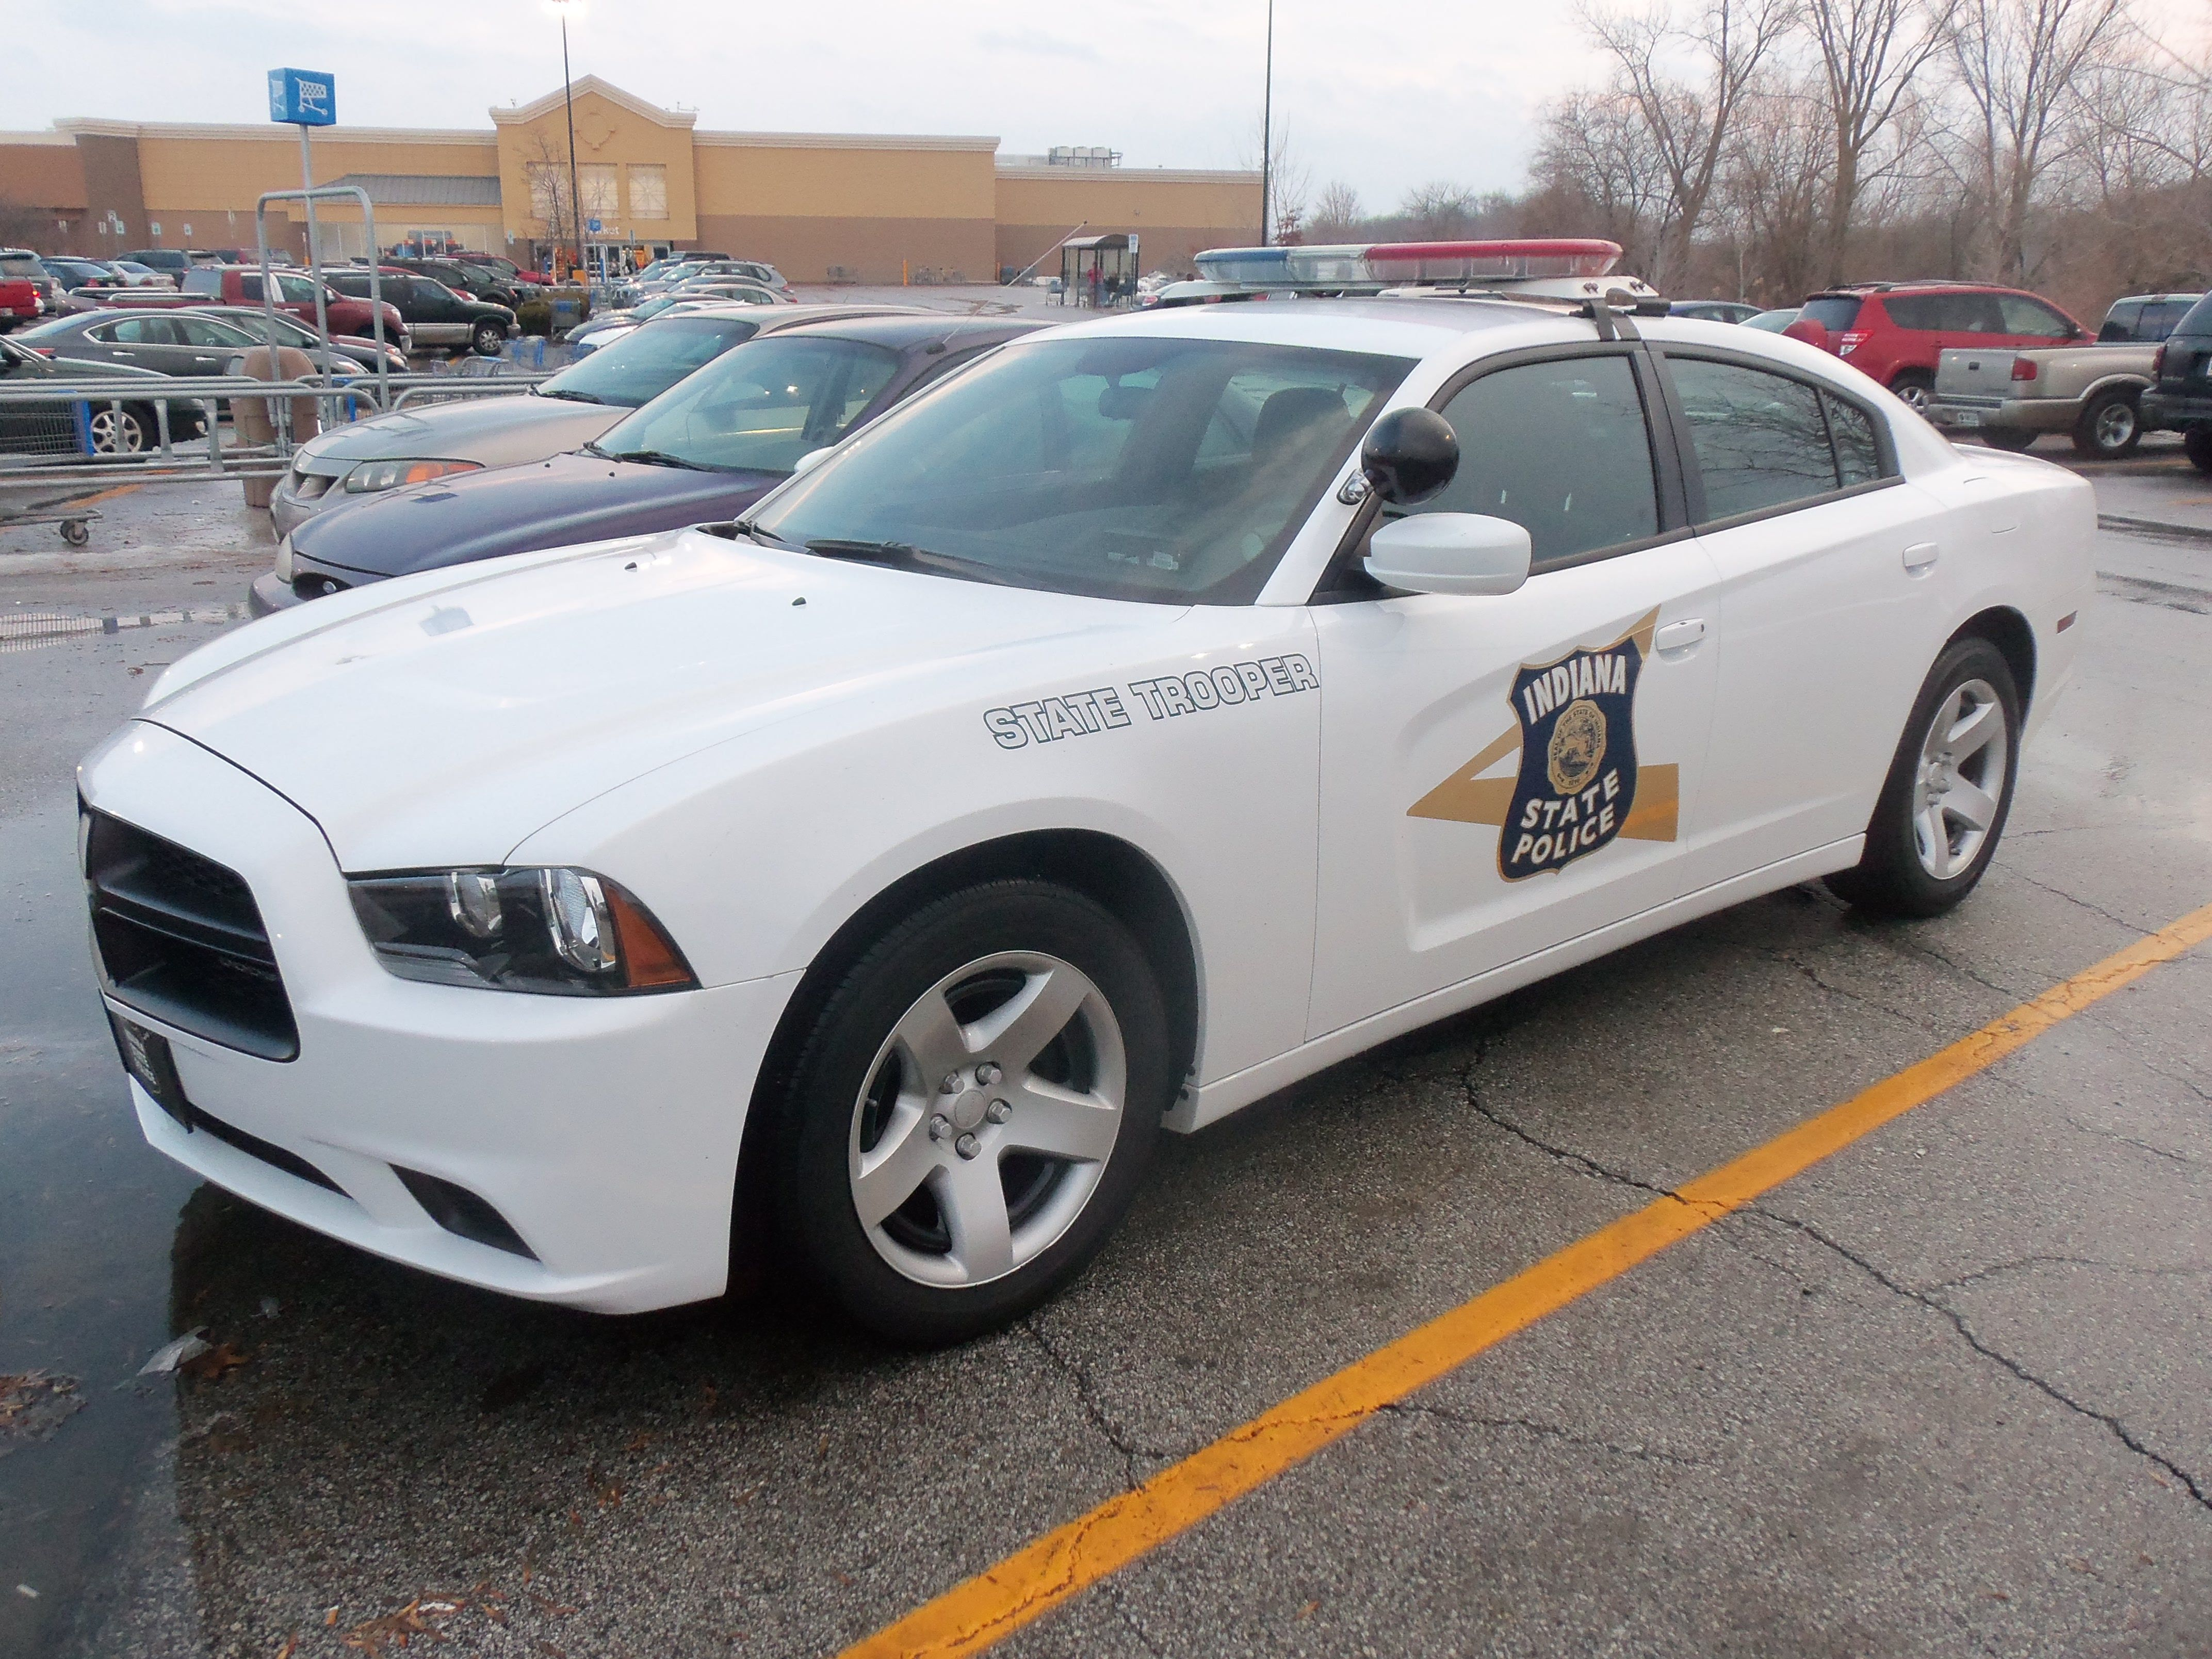 indiana state police car dodge charger isp pinterest indiana state state police and. Black Bedroom Furniture Sets. Home Design Ideas